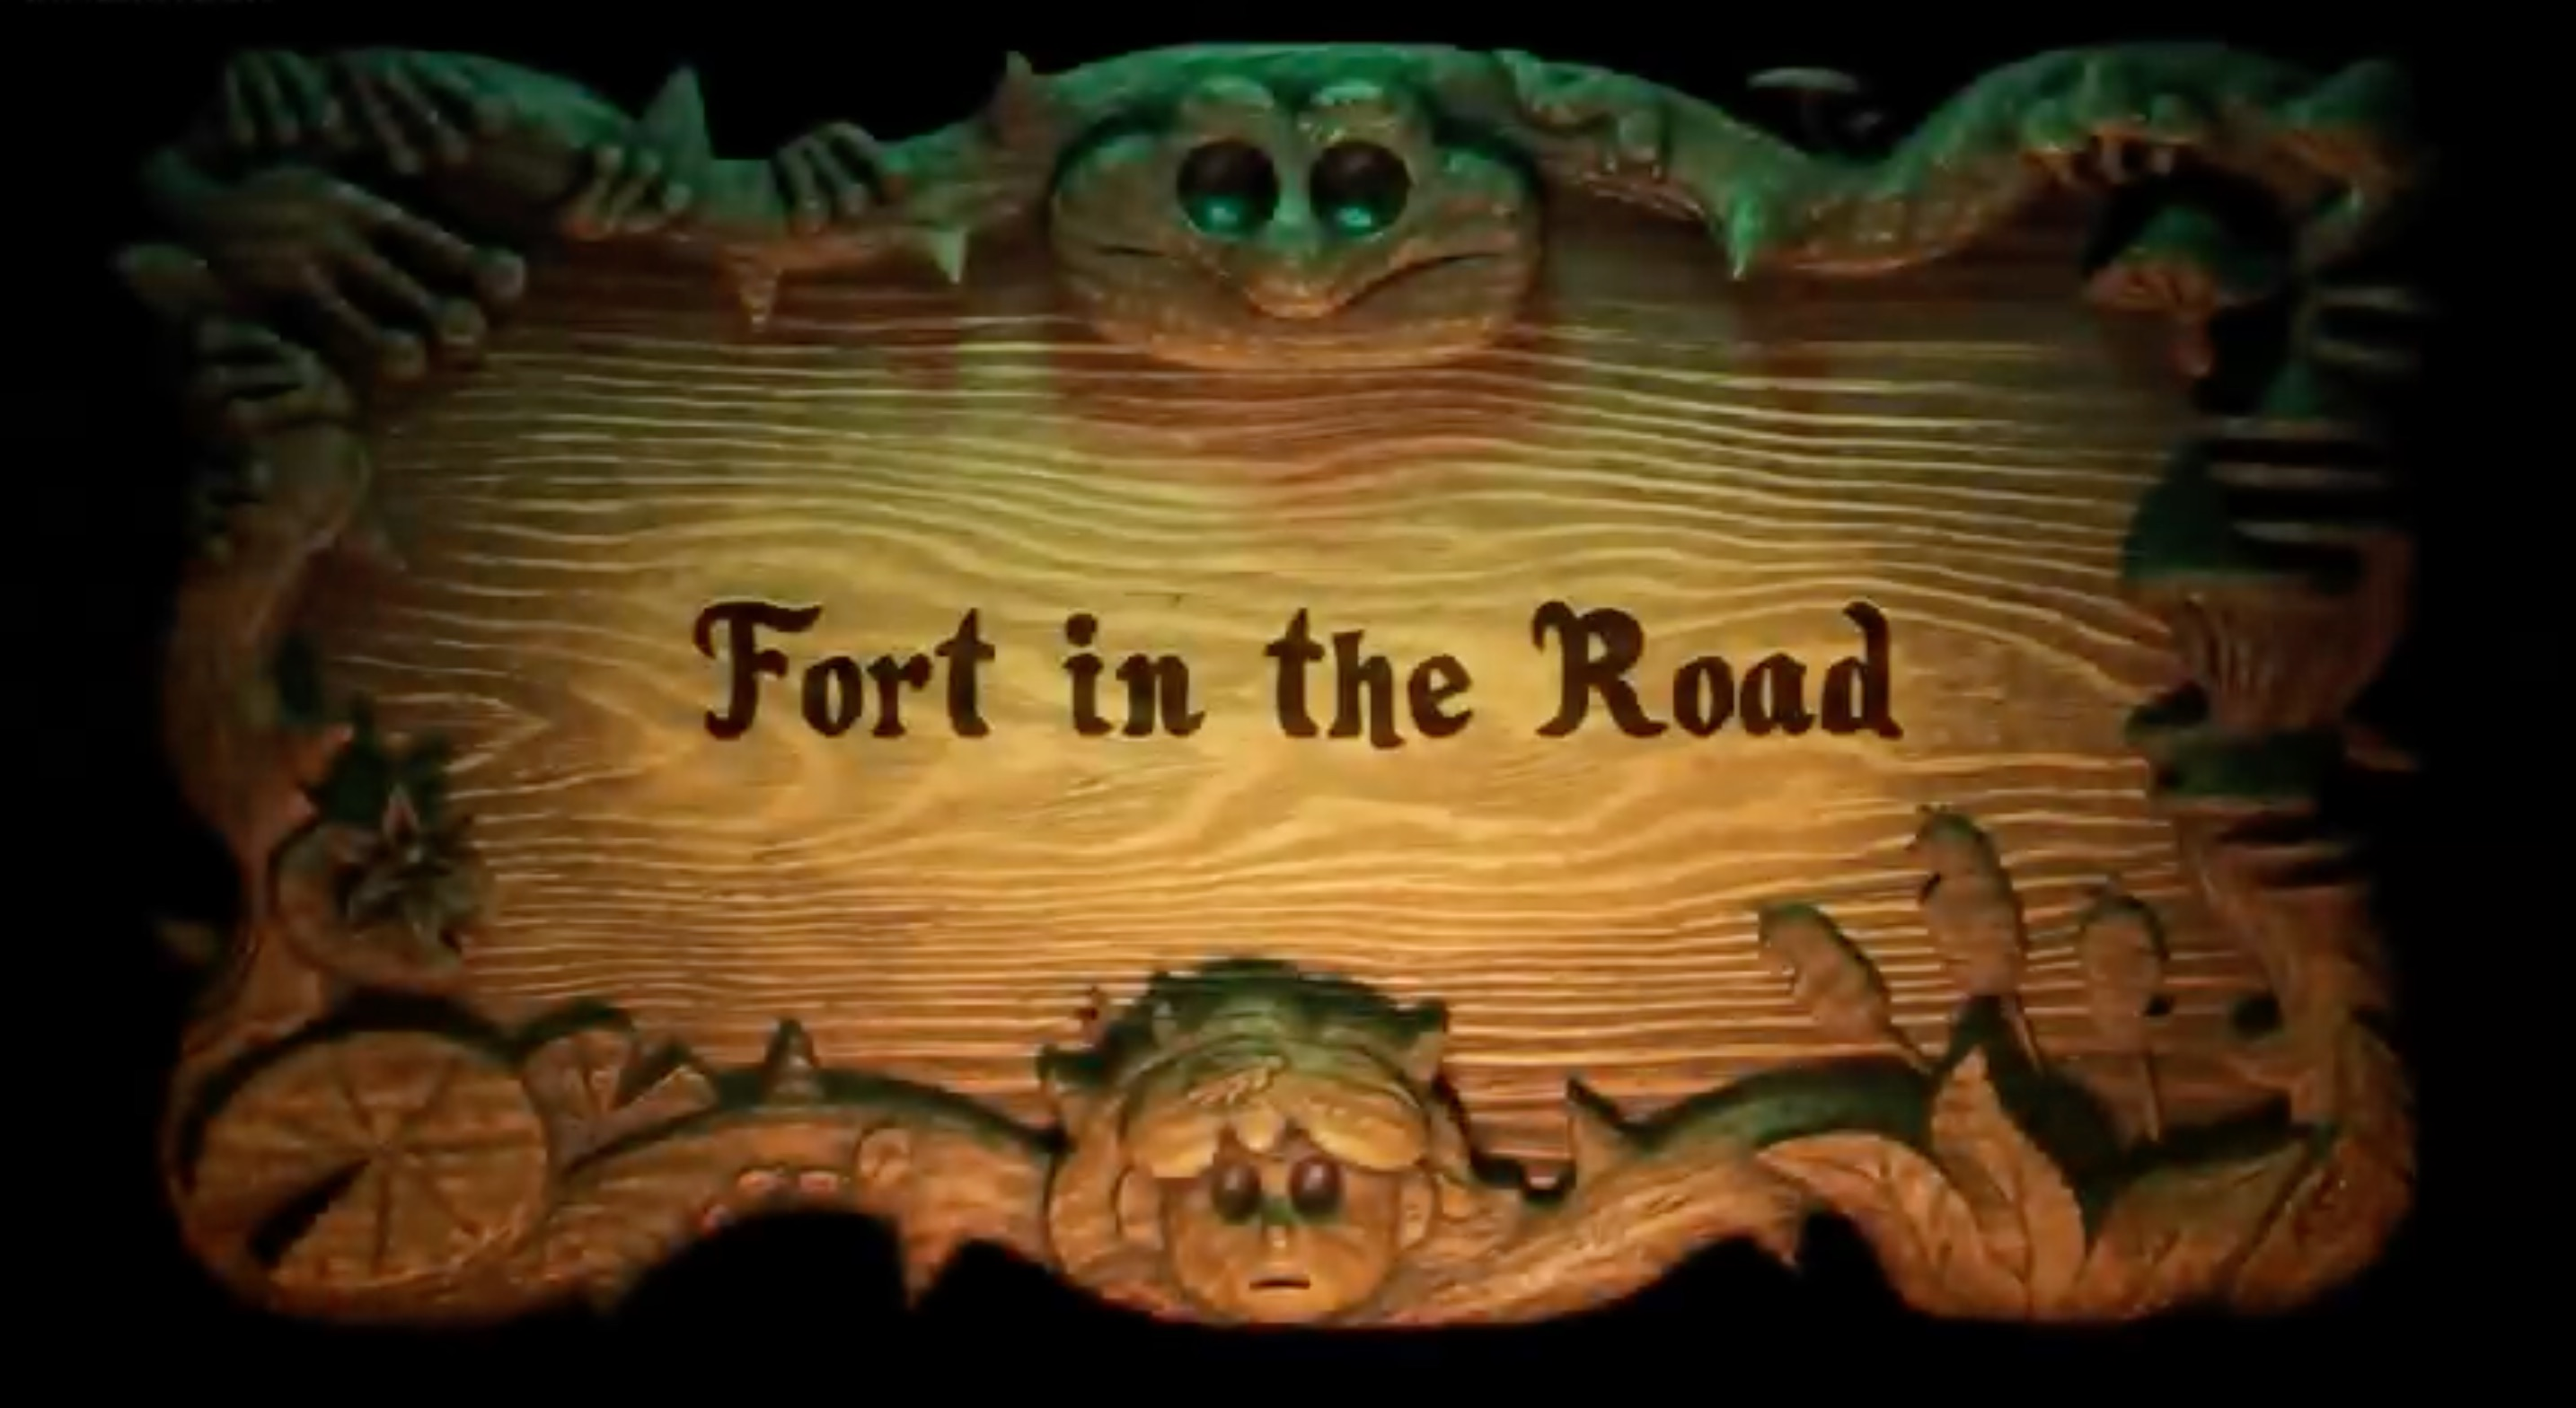 Fort in the Road